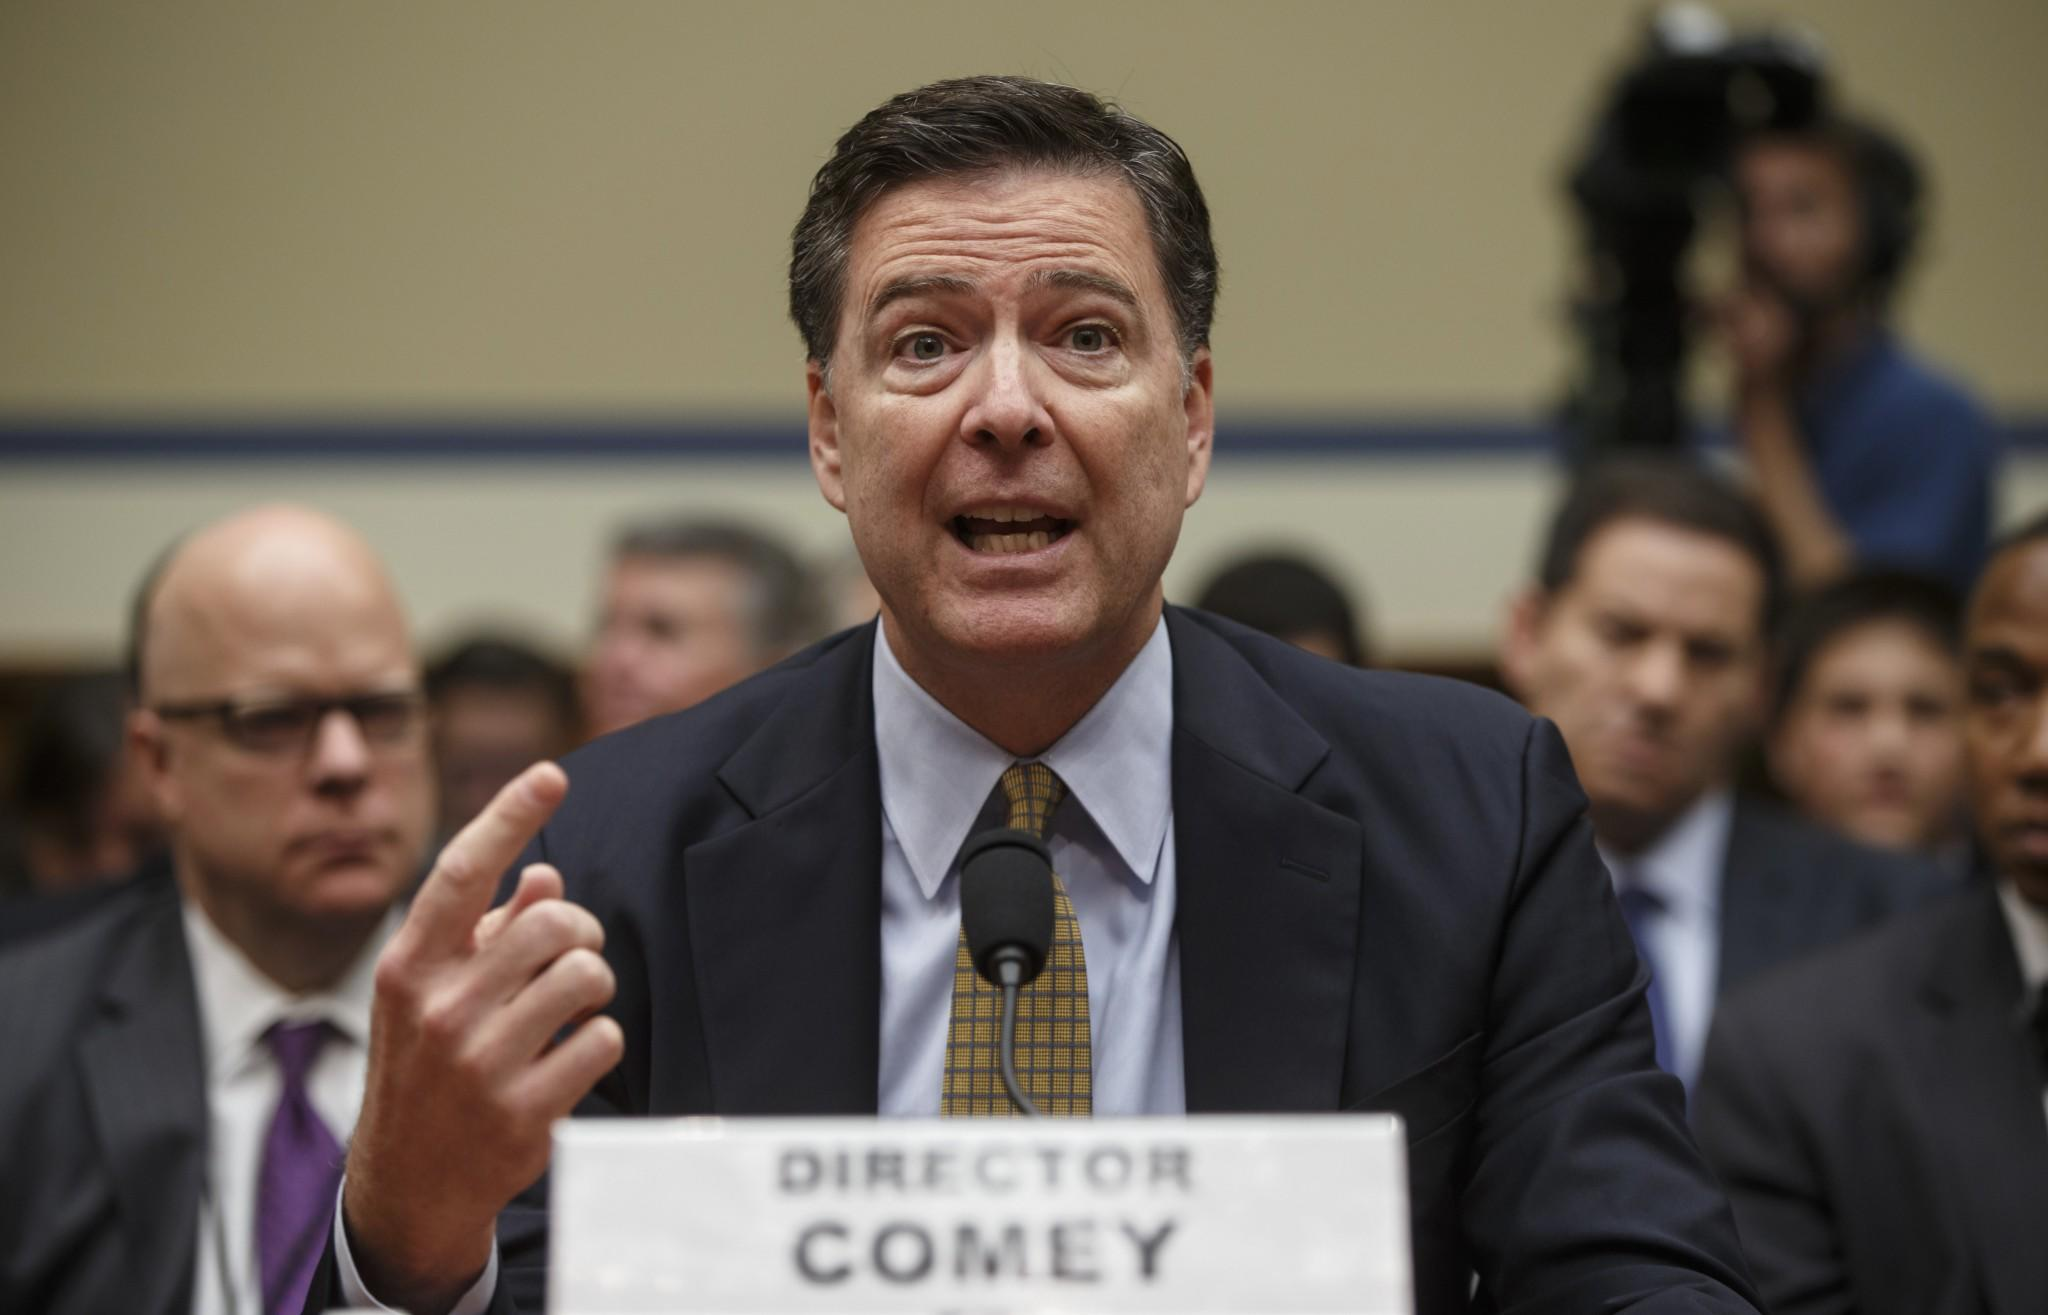 FBI Director James Comey testifies before the House Oversight Committee about Hillary Clinton's email investigation, at the Capitol in Washington in July 2016. (Photo: J. Scott Applewhite/AP)